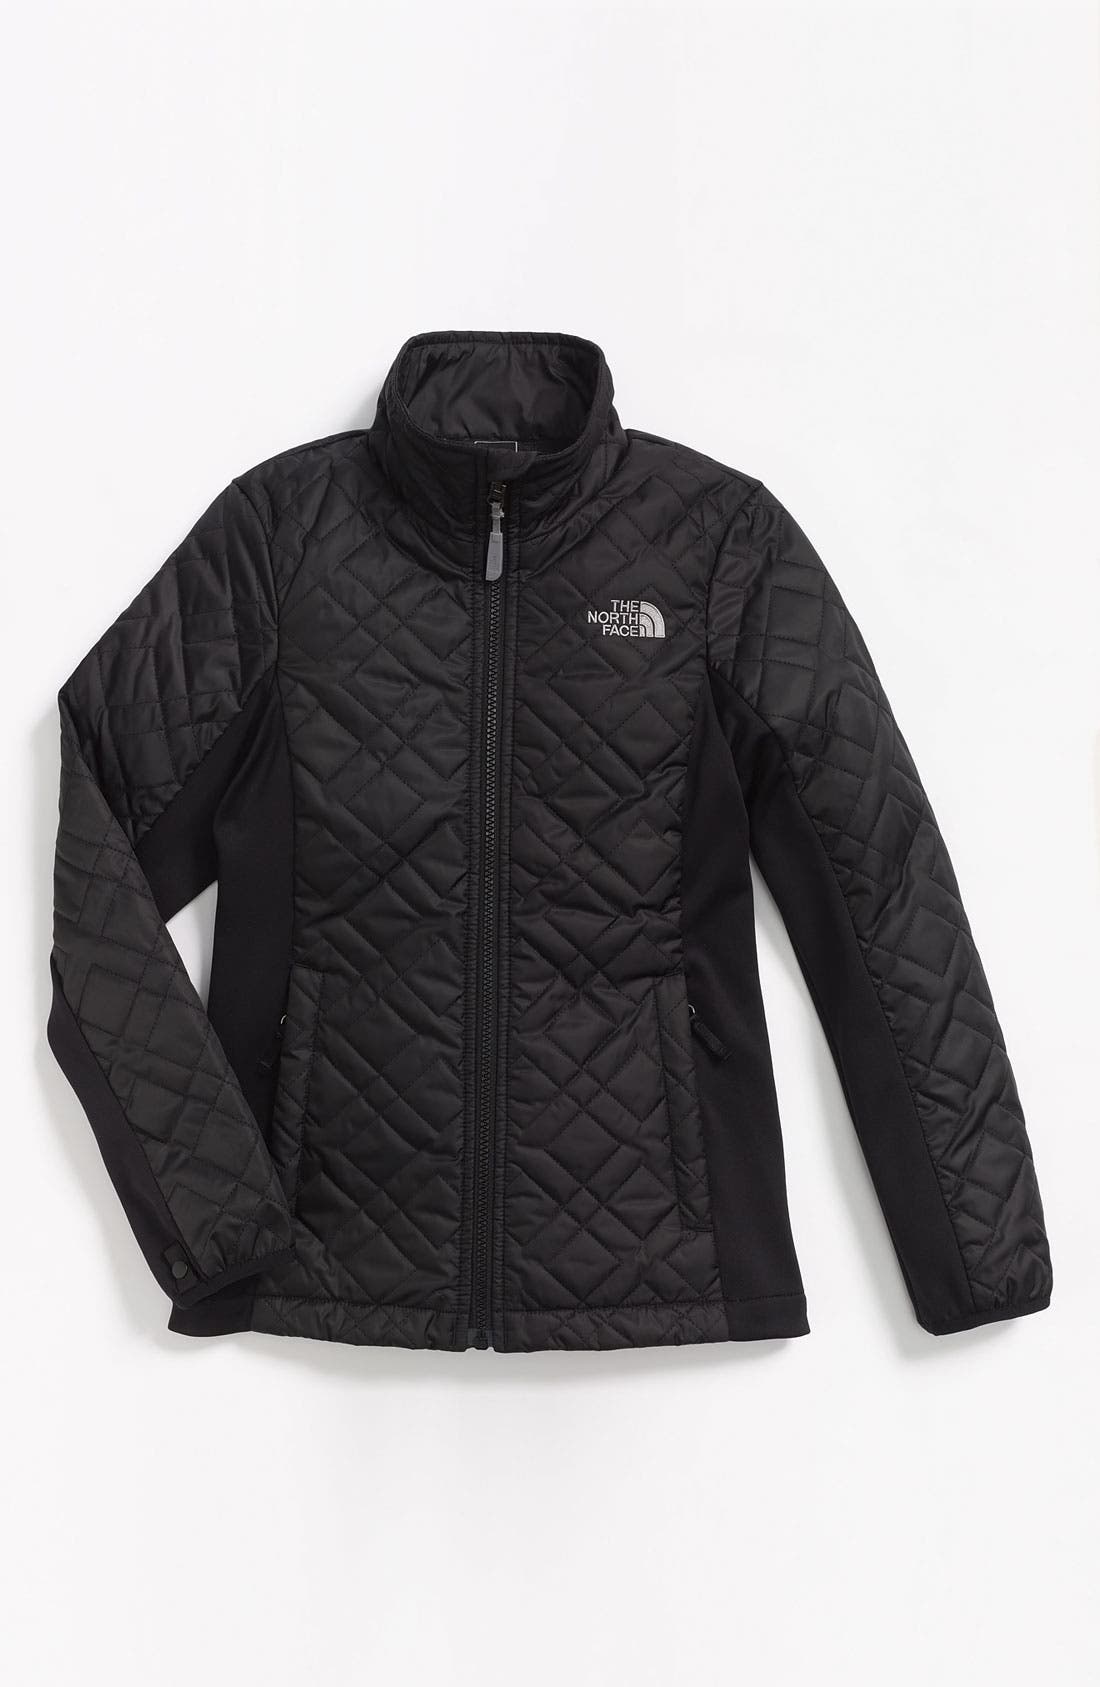 Alternate Image 1 Selected - The North Face 'Sibrian' Jacket (Big Girls)